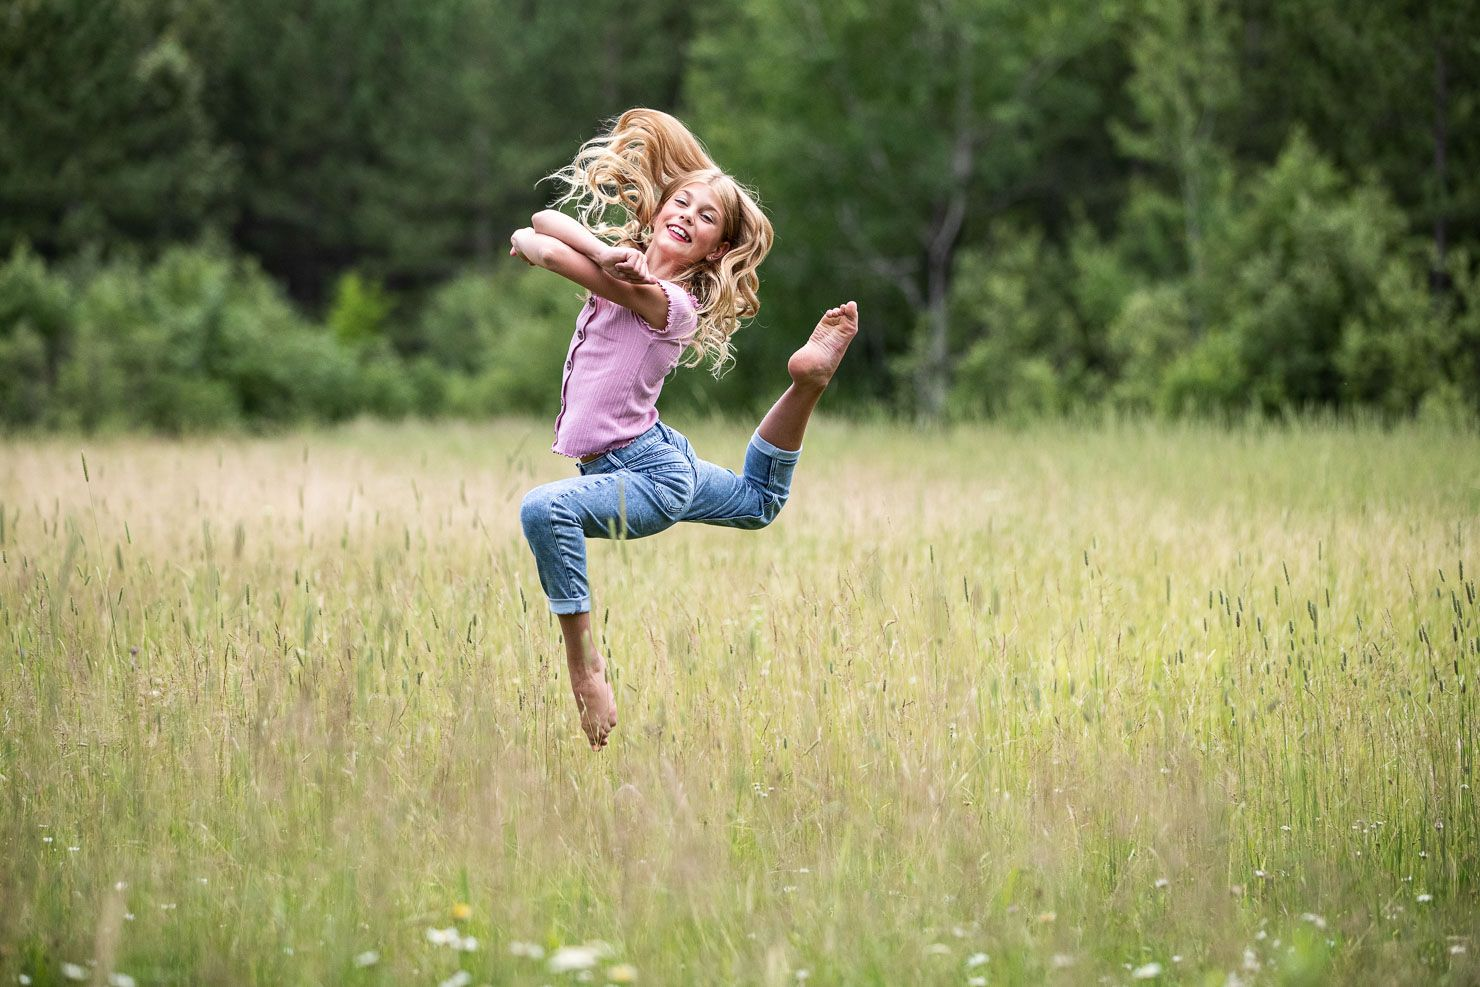 Field Dancing, Dancer Doing Jump, Jump, Dancer, Dance Pose, Dance by aKaiserPhoto, Dance Photographer